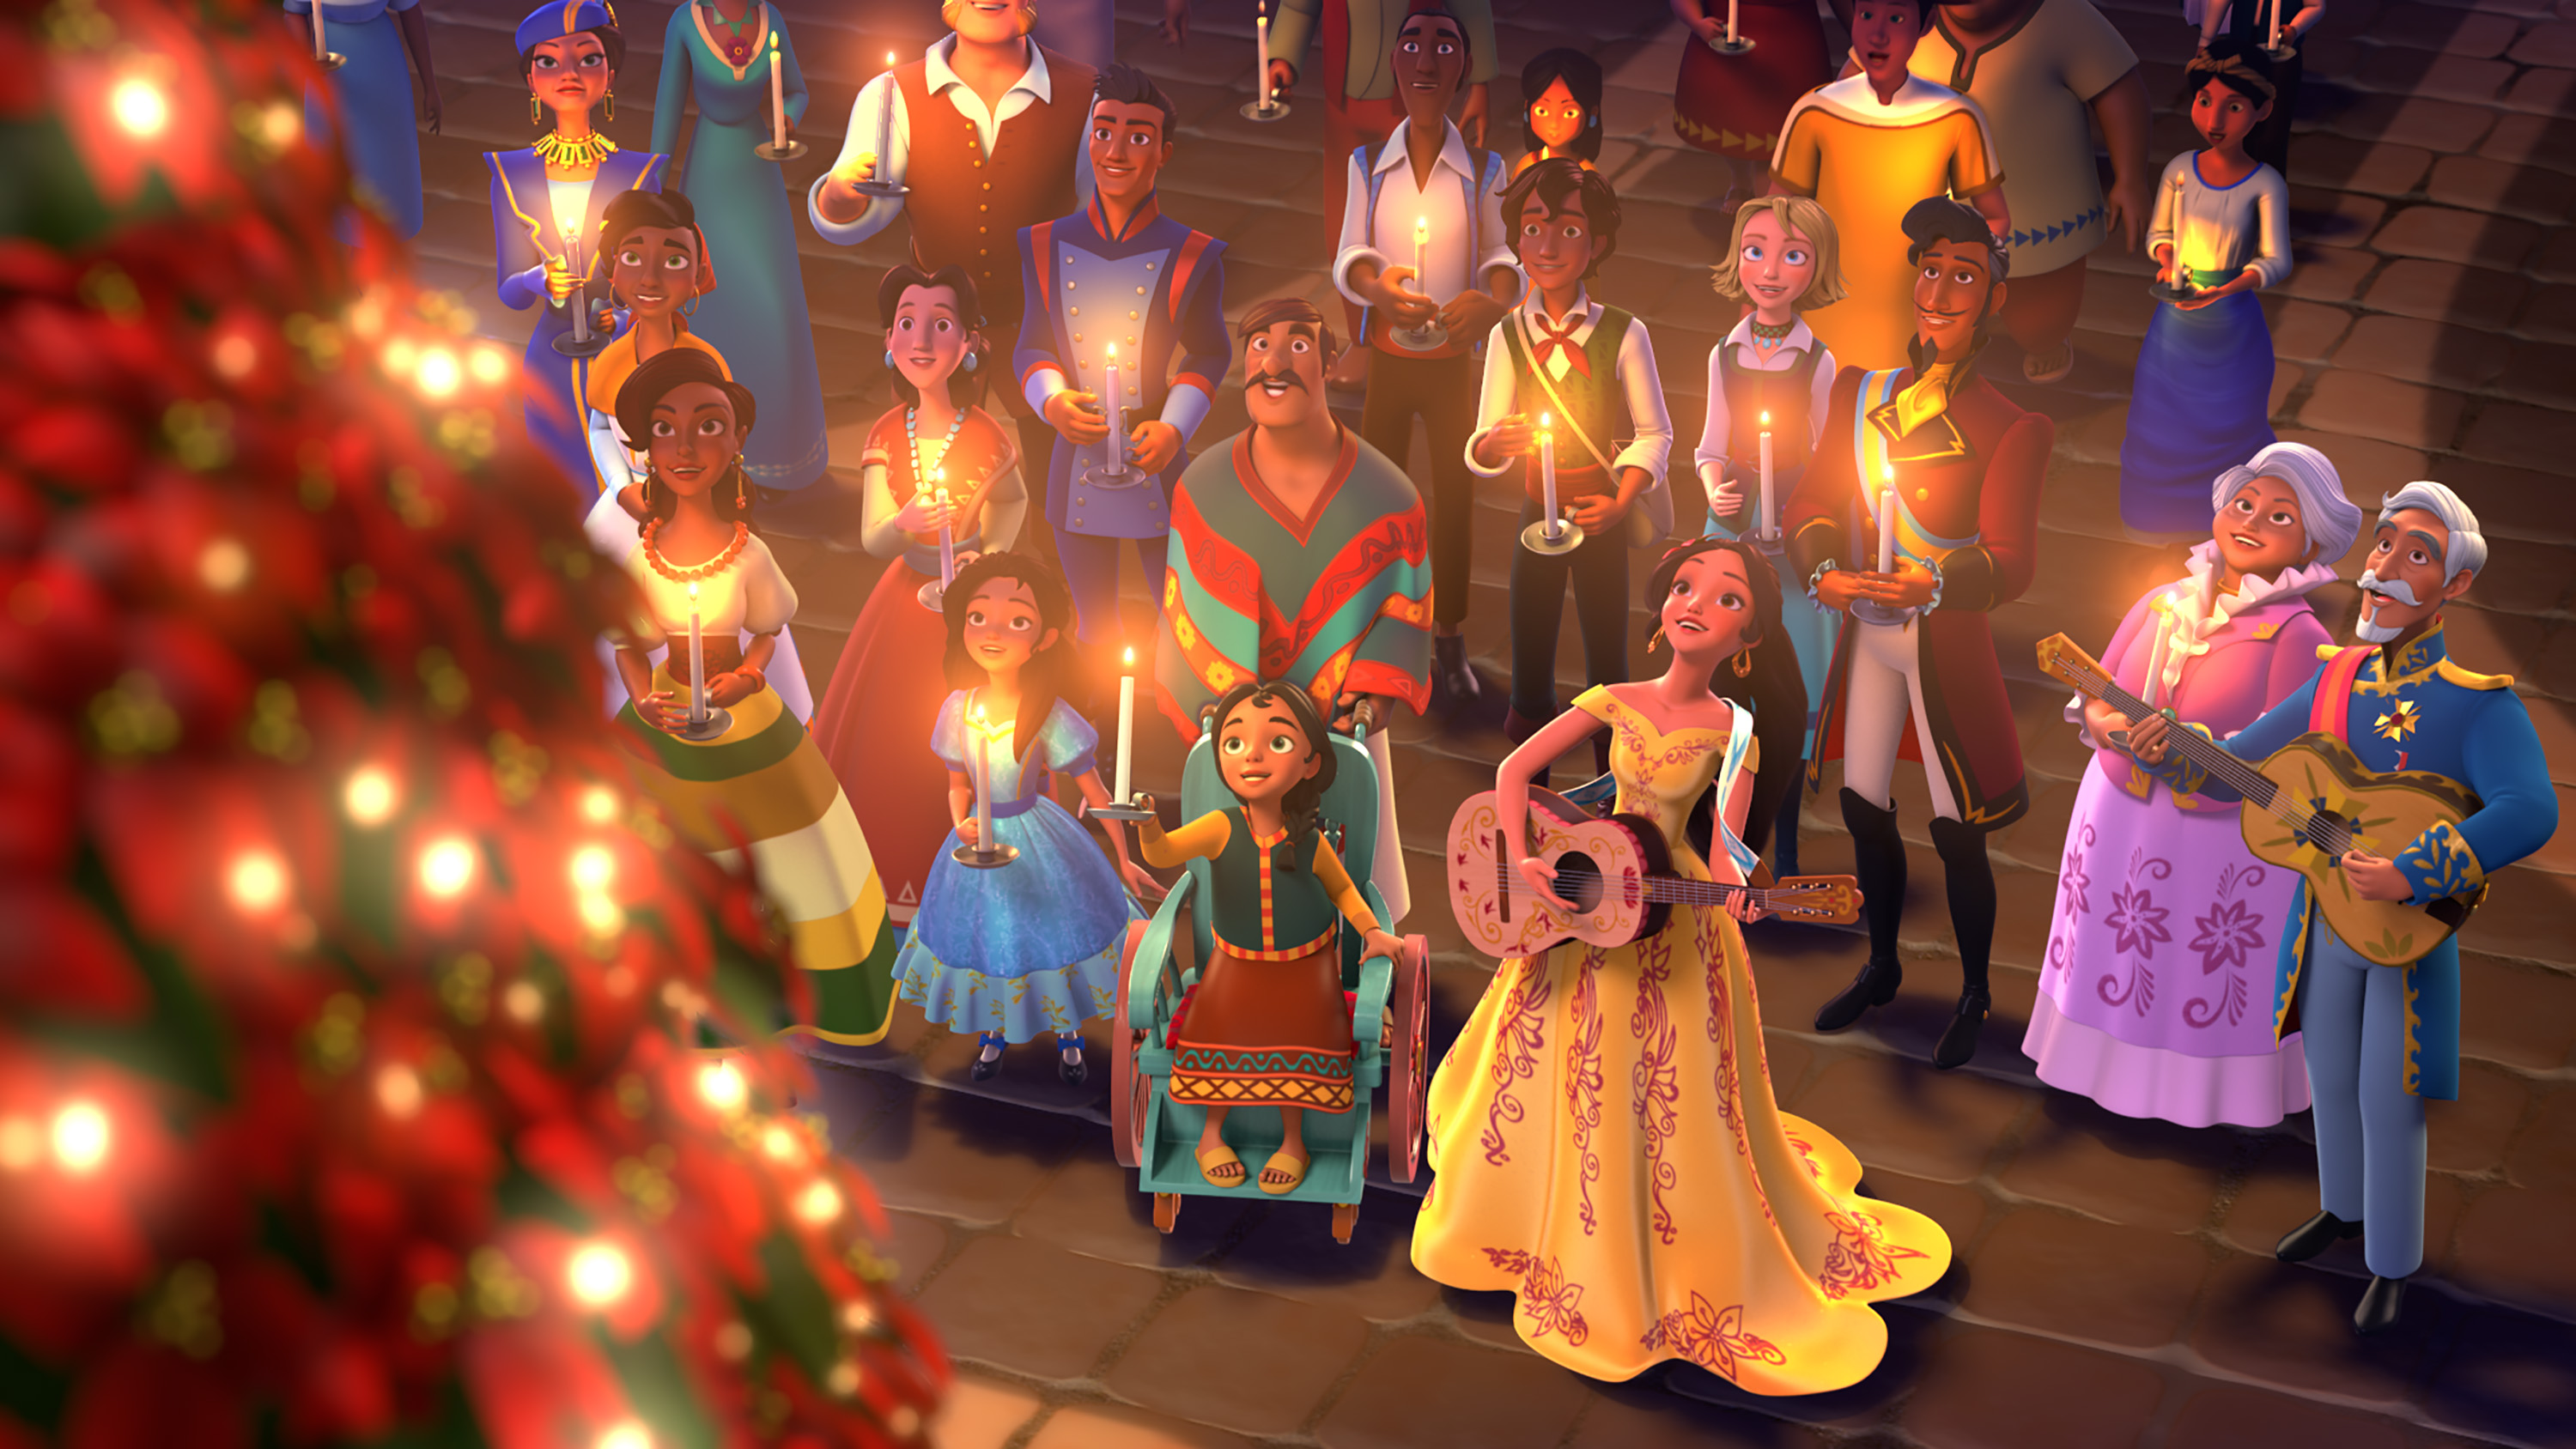 """ELENA OF AVALOR - """"Navidad"""" - In the special """"Navidad"""" episode, premiering FRIDAY, DECEMBER 9 (7:30 p.m., ET/PT) on Disney Channel, Elena bring all the communities of Avalor together to share each other's holiday traditions. But when a Do–a Paloma scheme causes an overly competitive atmosphere, Elena sets off on a traditional """"parranda"""" and carols through the city to remind everyone of the true spirit of Navidad. (Disney Channel) MARLENA, ISABEL, GABE, MATEO, NAOMI, ELENA, ESTEBAN, LUISA, FRANCISCO"""